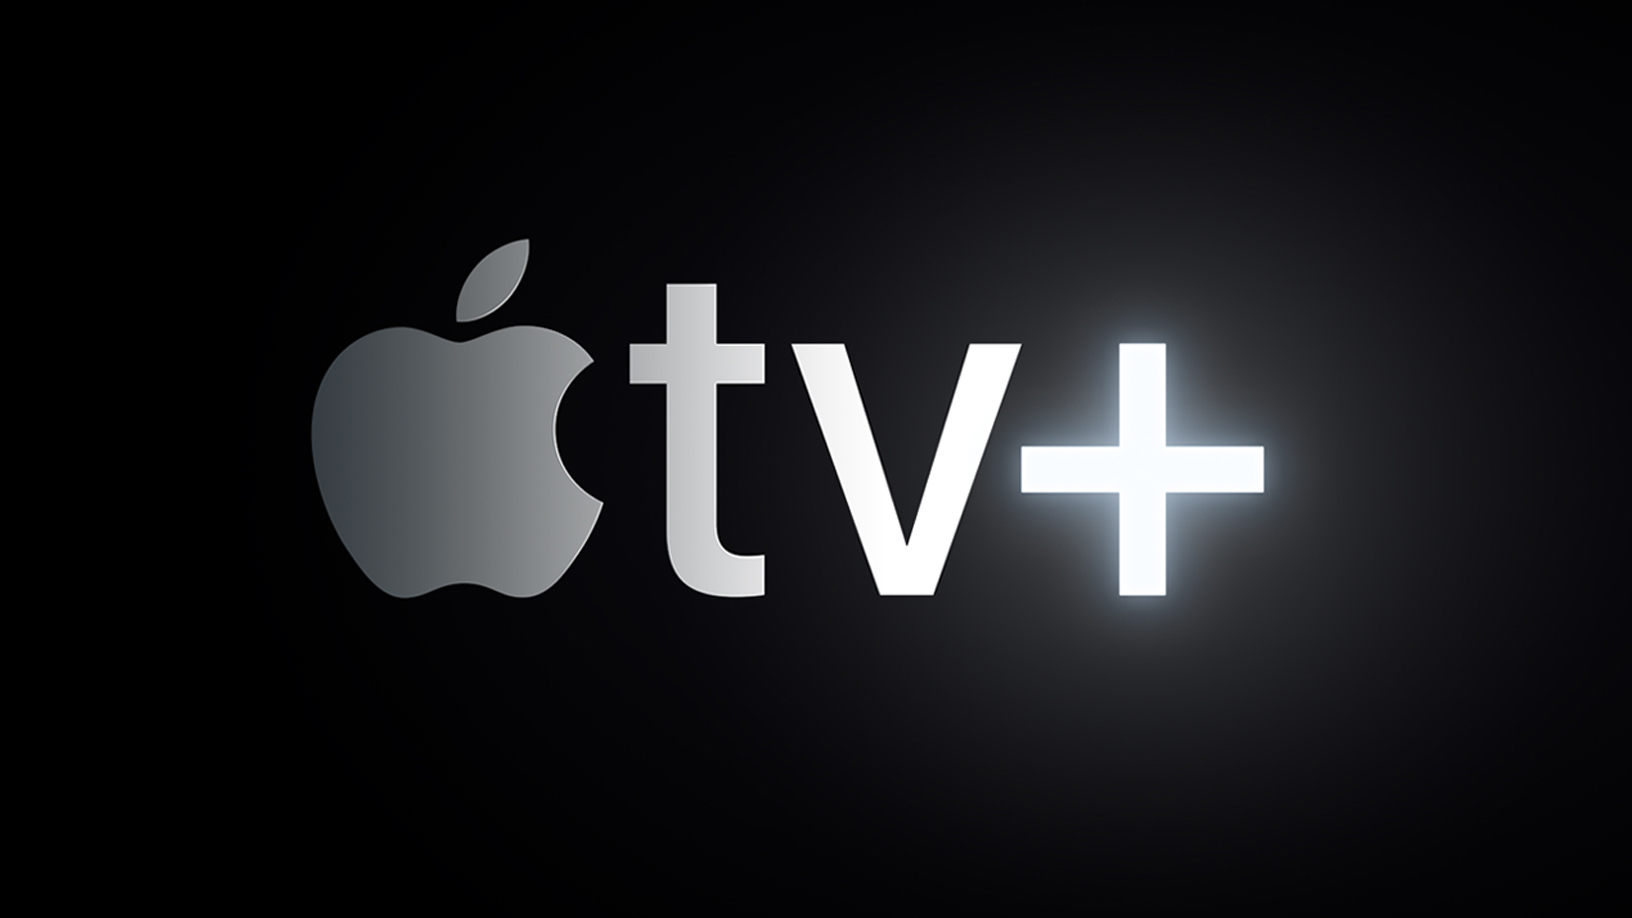 What is Apple TV+?